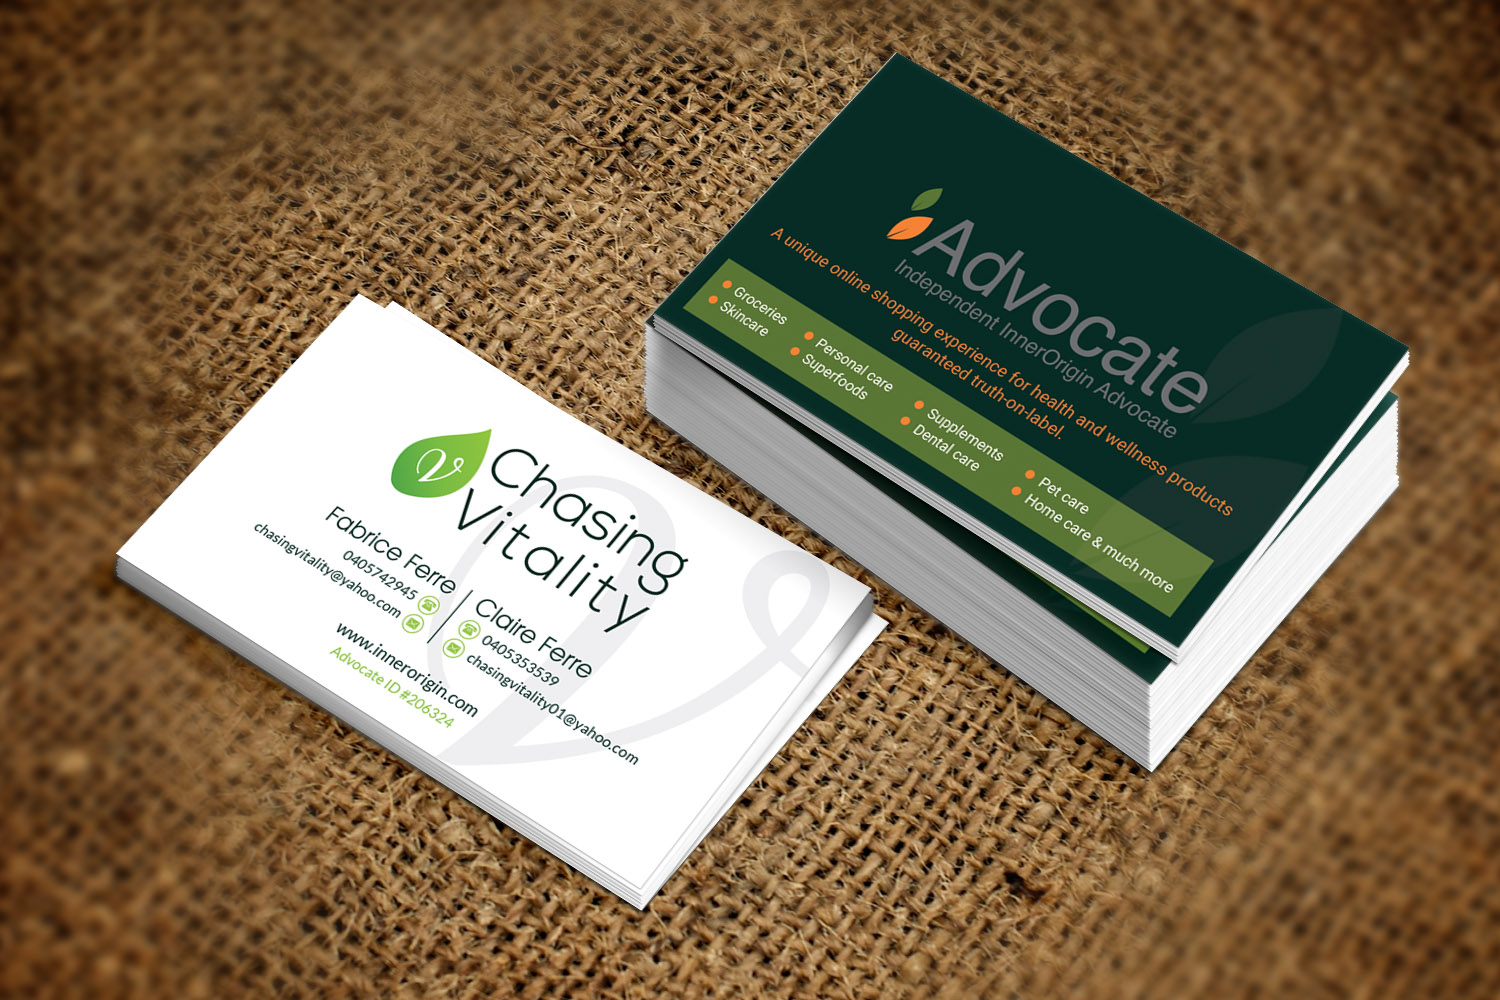 Personable, Economical, Health And Wellness Business Card Design for ...